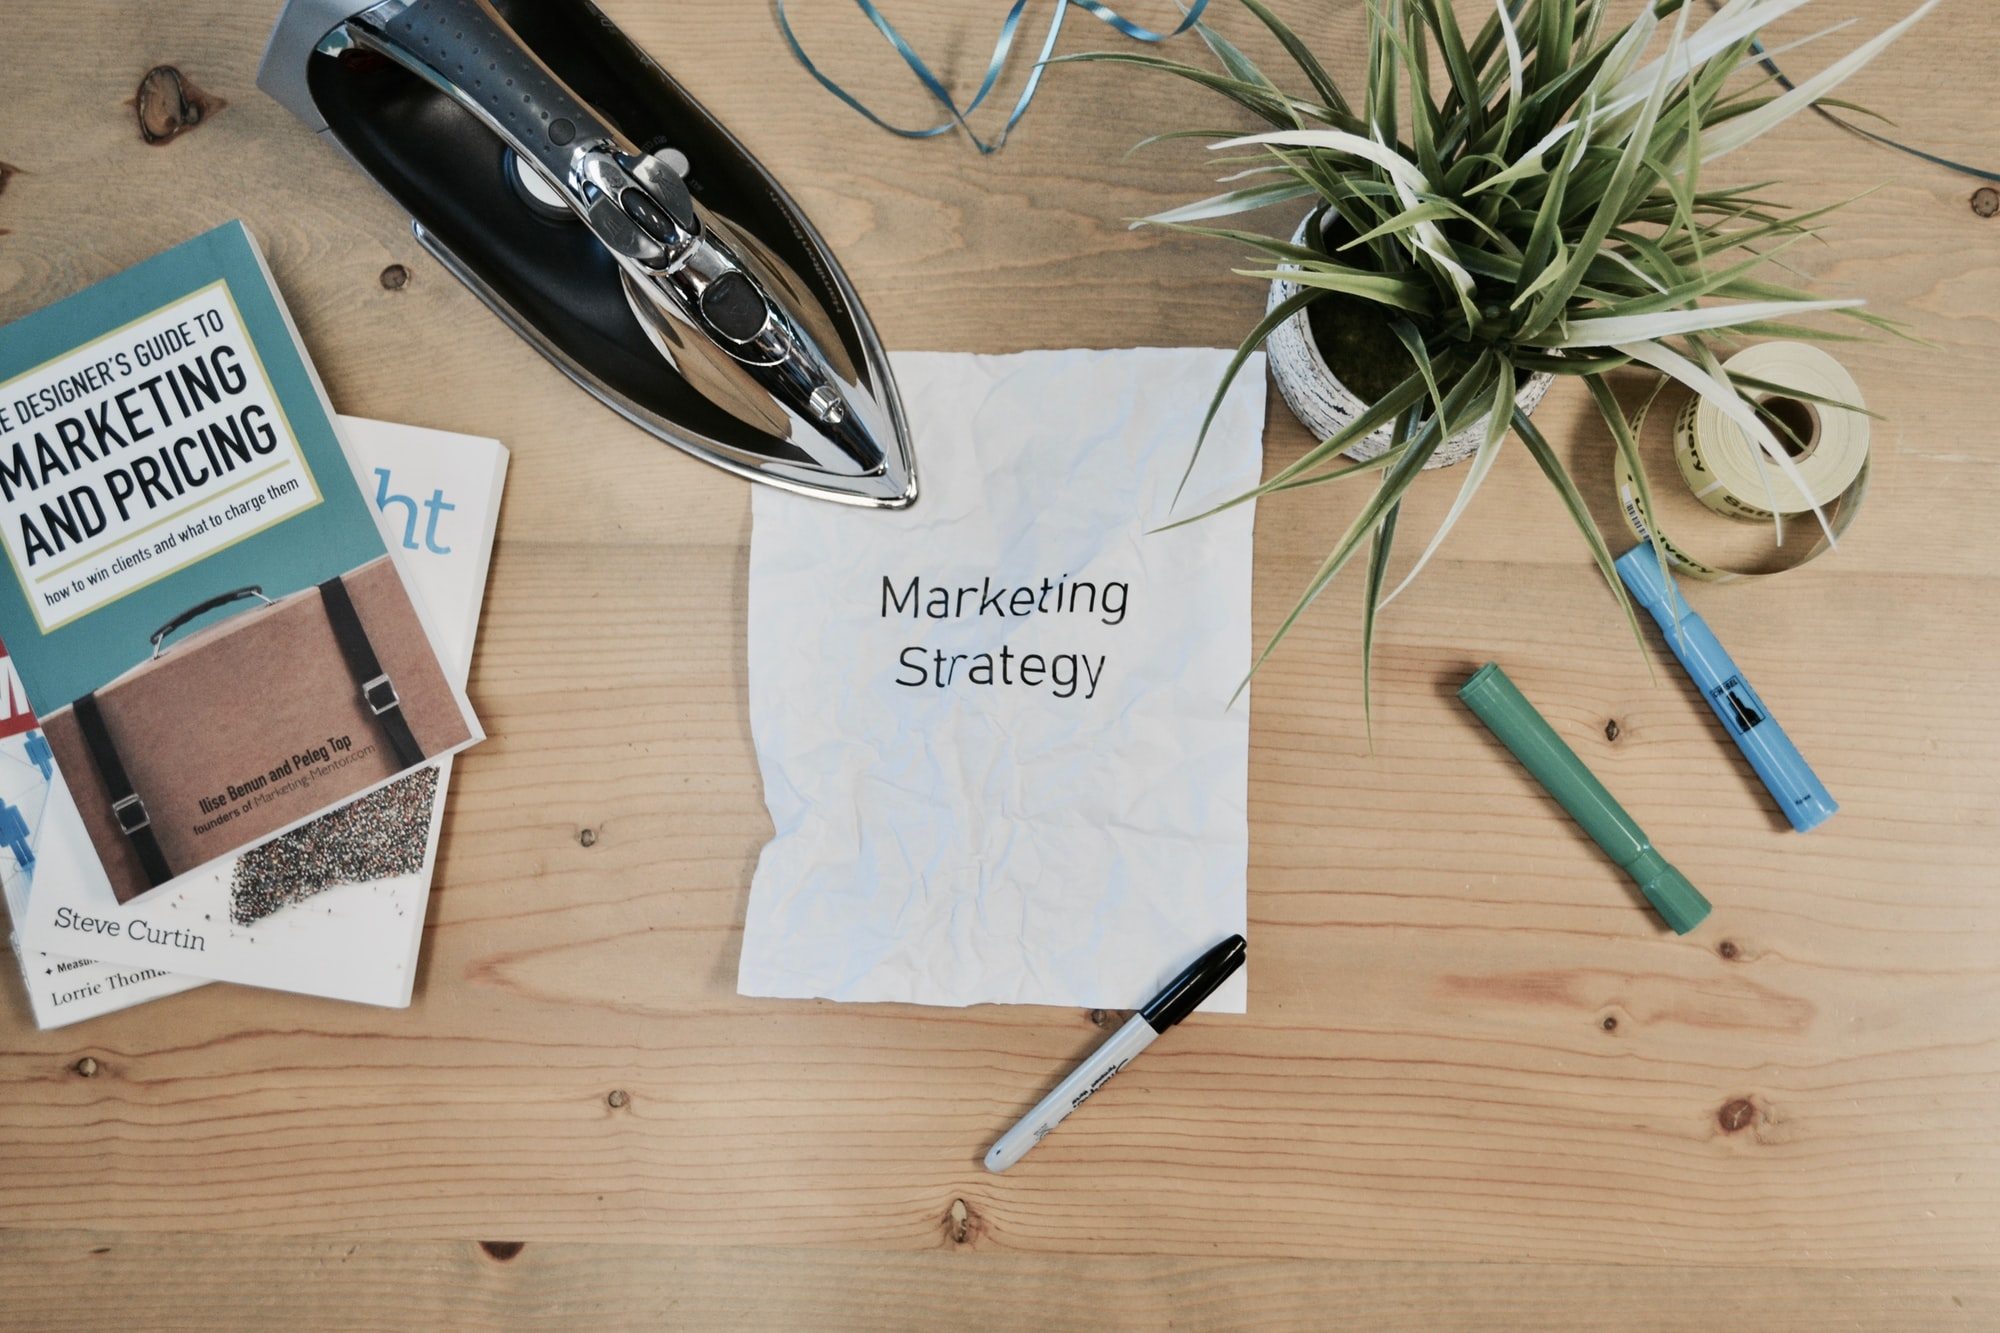 Ironing out your strategy